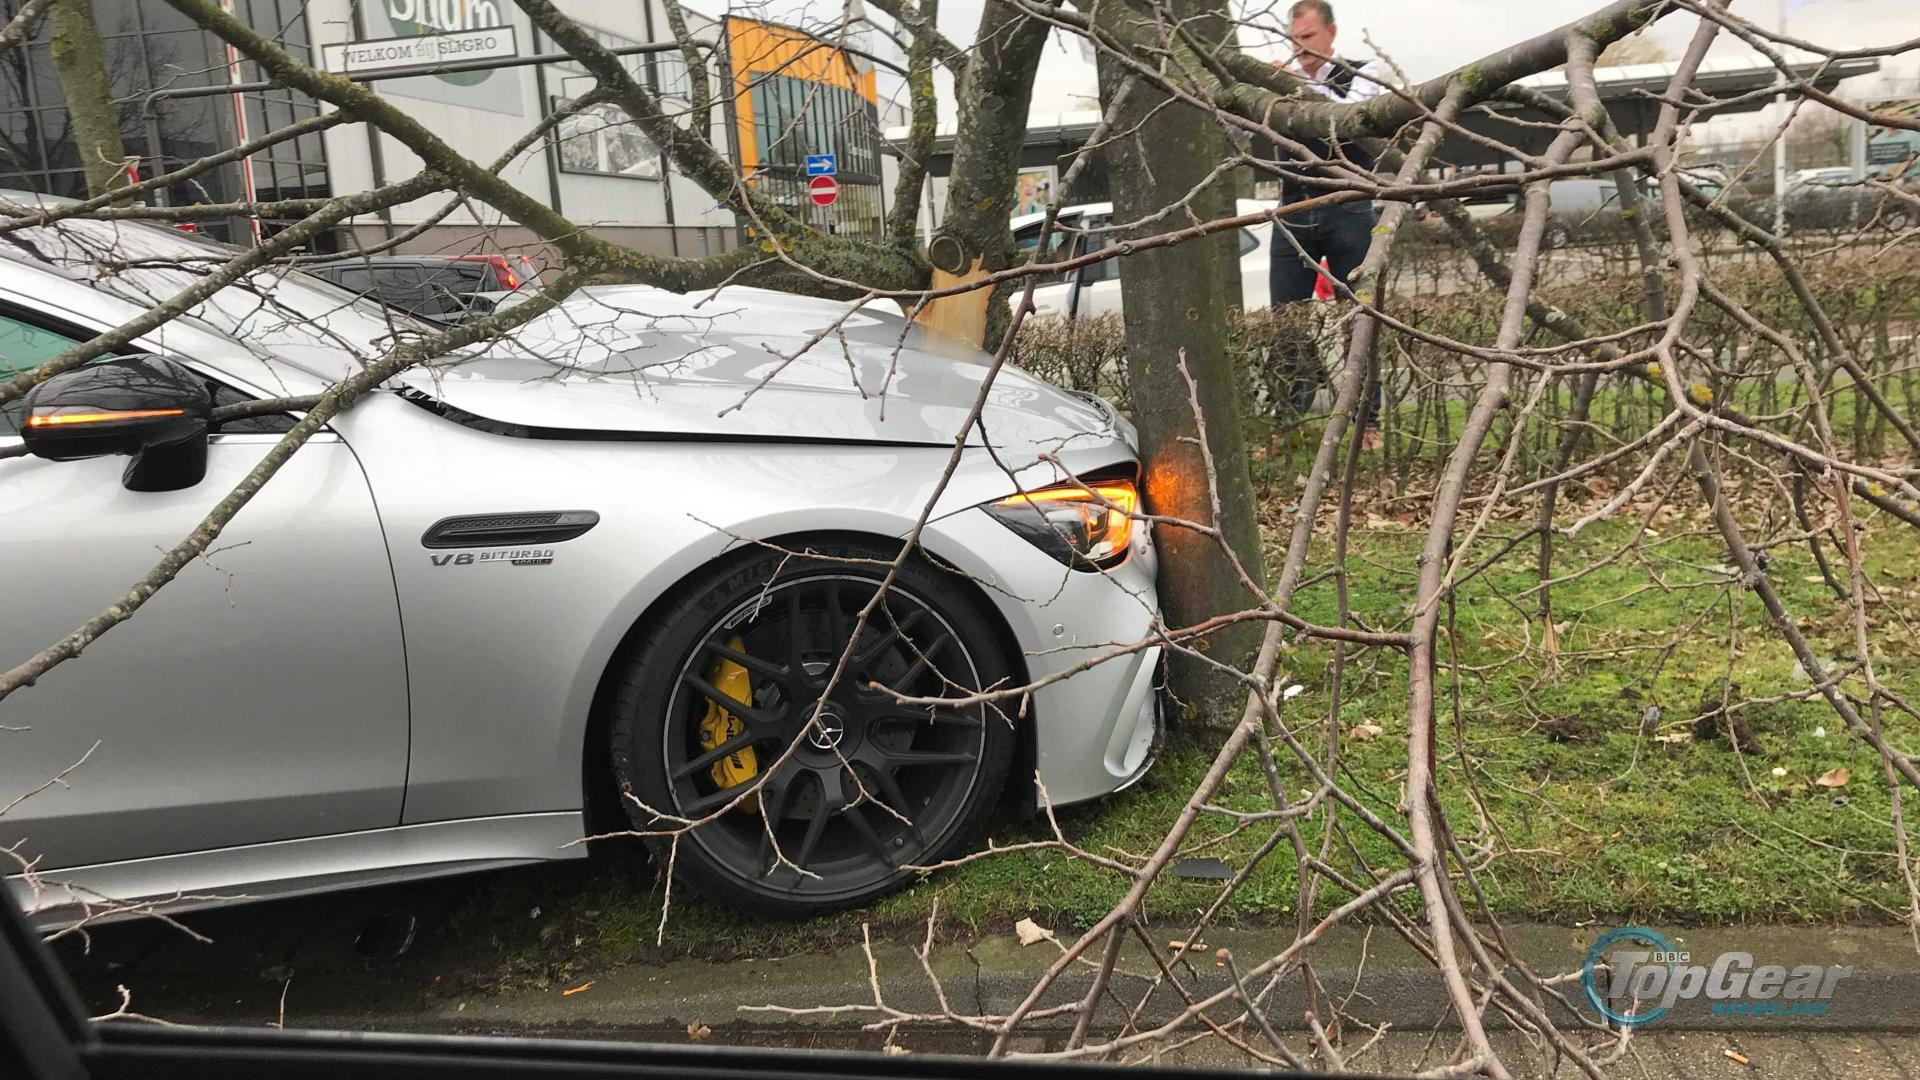 mercedes-amg gt 63 s 4-door crash